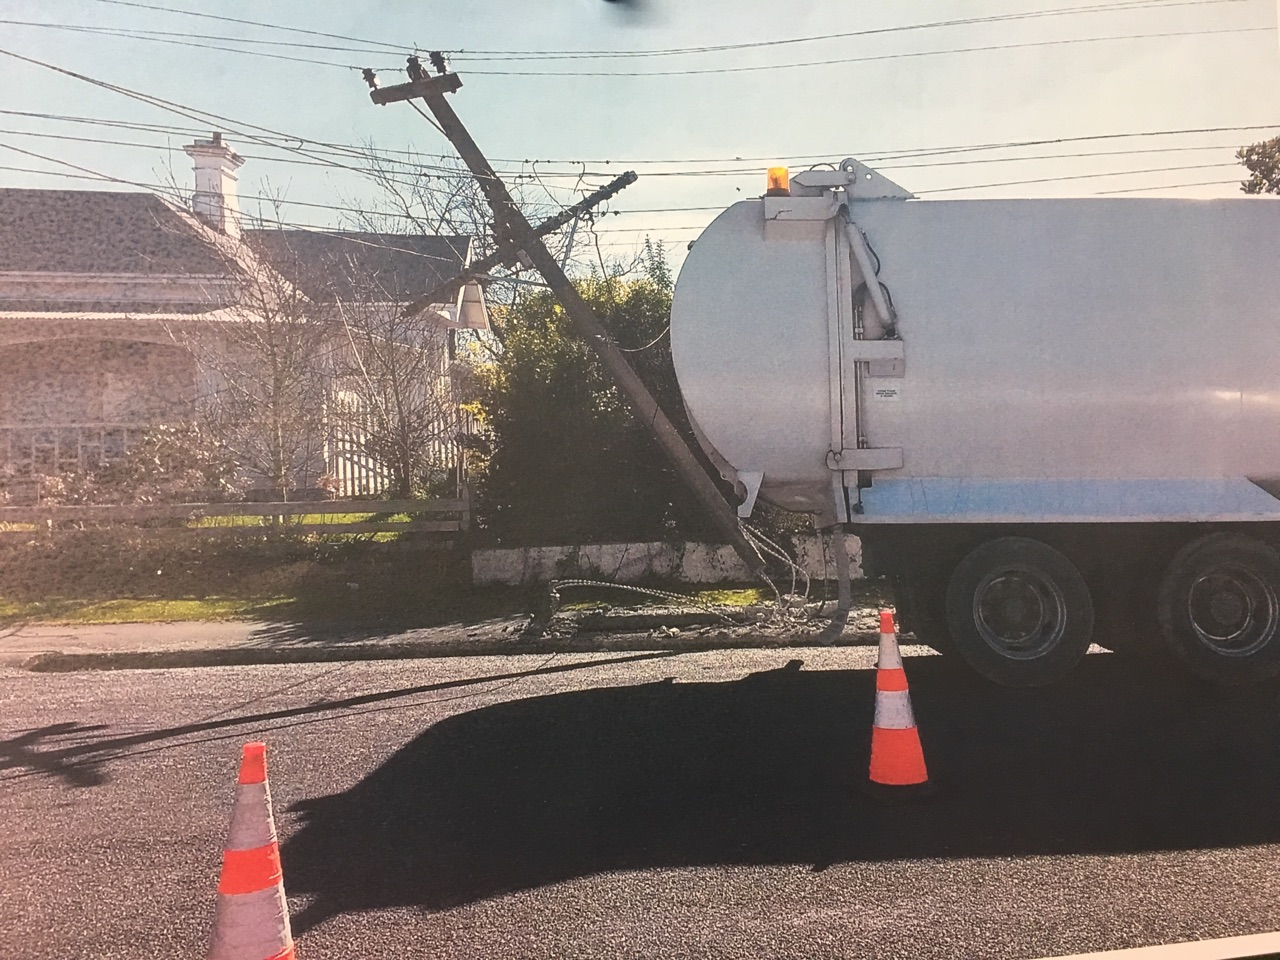 Truck knocks out power in Waimate